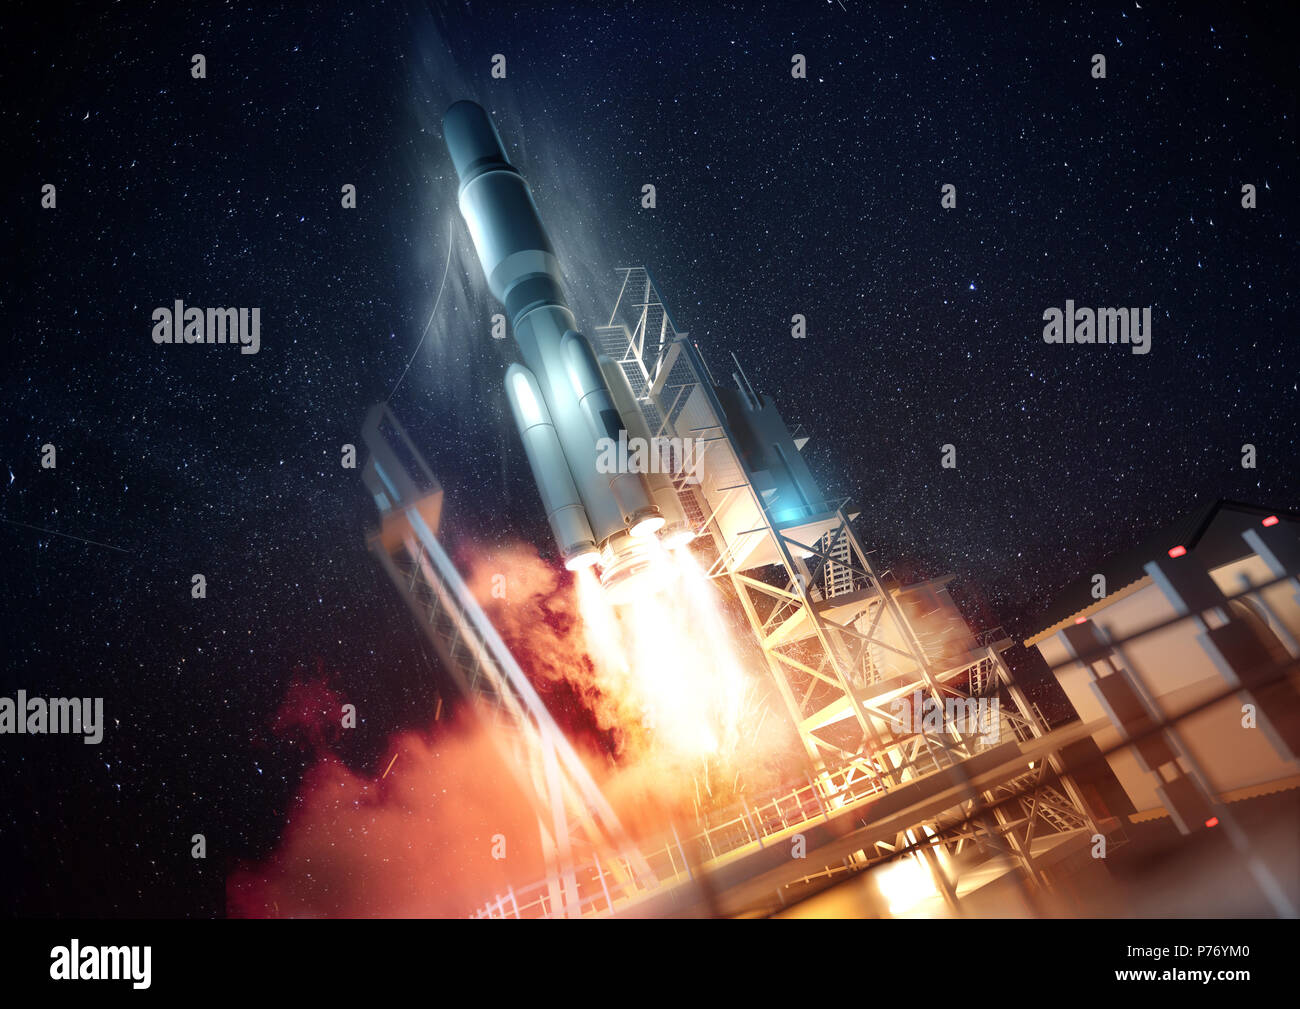 A large commercial rocket being launched into space at night. 3D illustration. - Stock Image